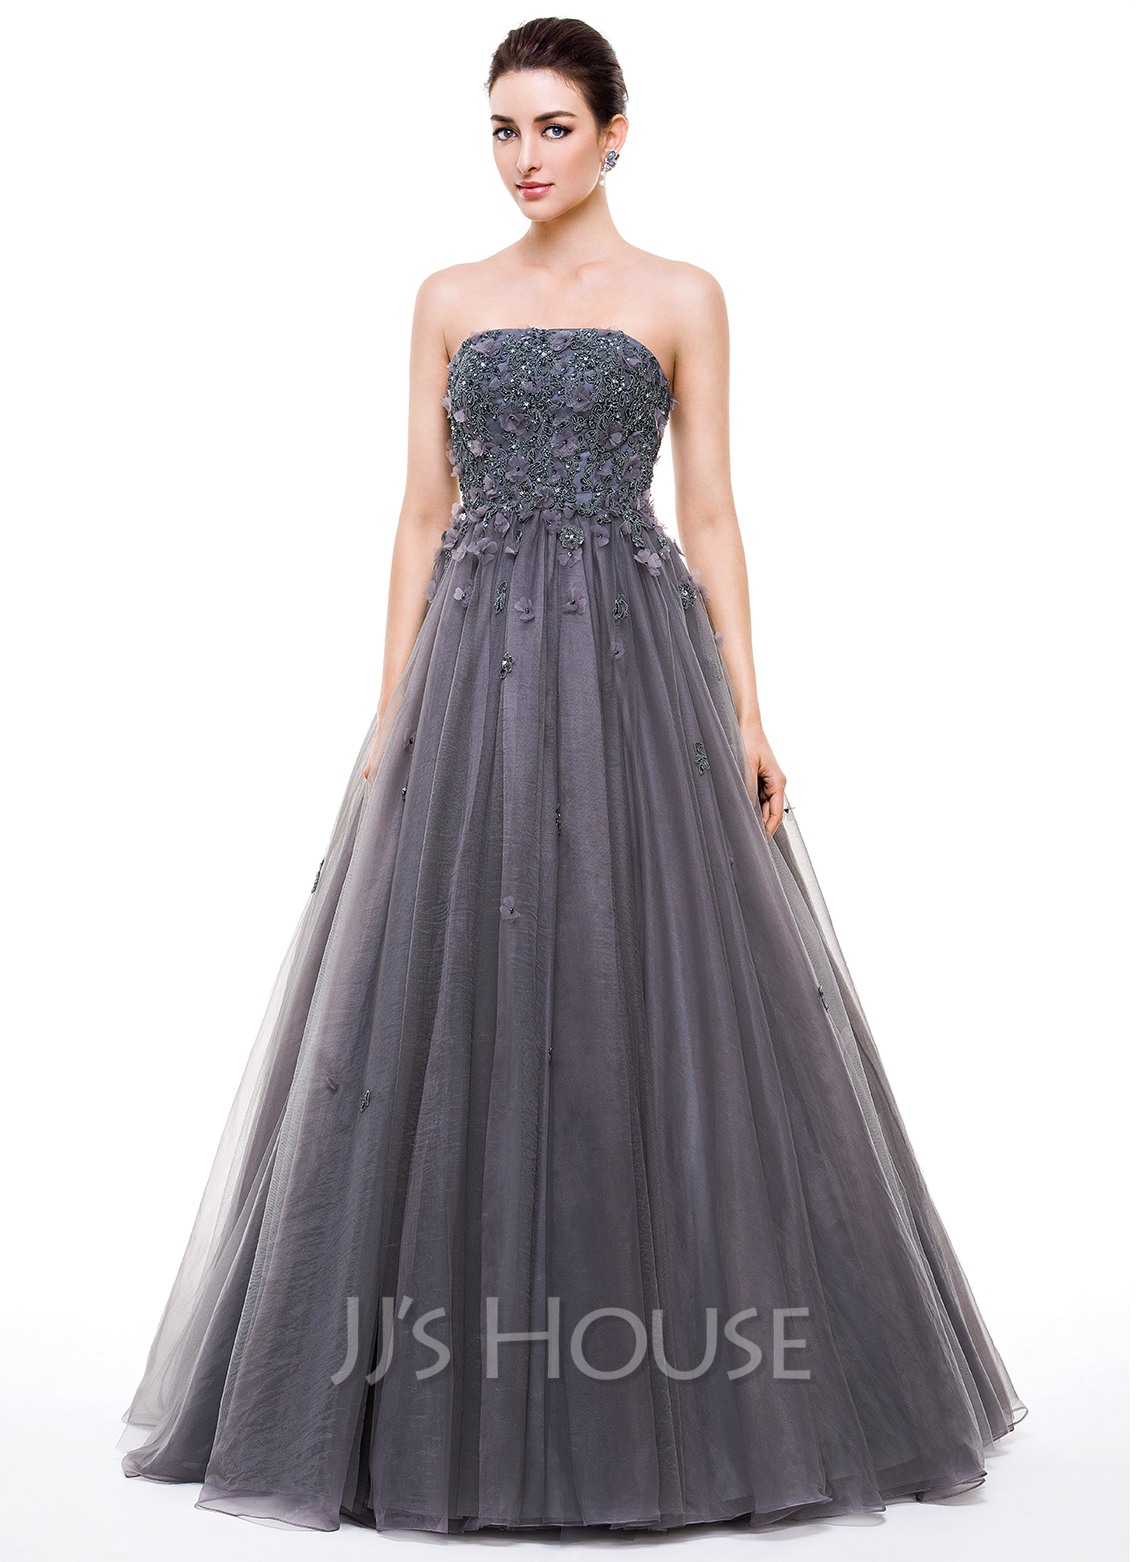 Wedding Prom Gown collection prom gown pictures the fashions of paradise ball strapless floor length tulle dress with beading beading